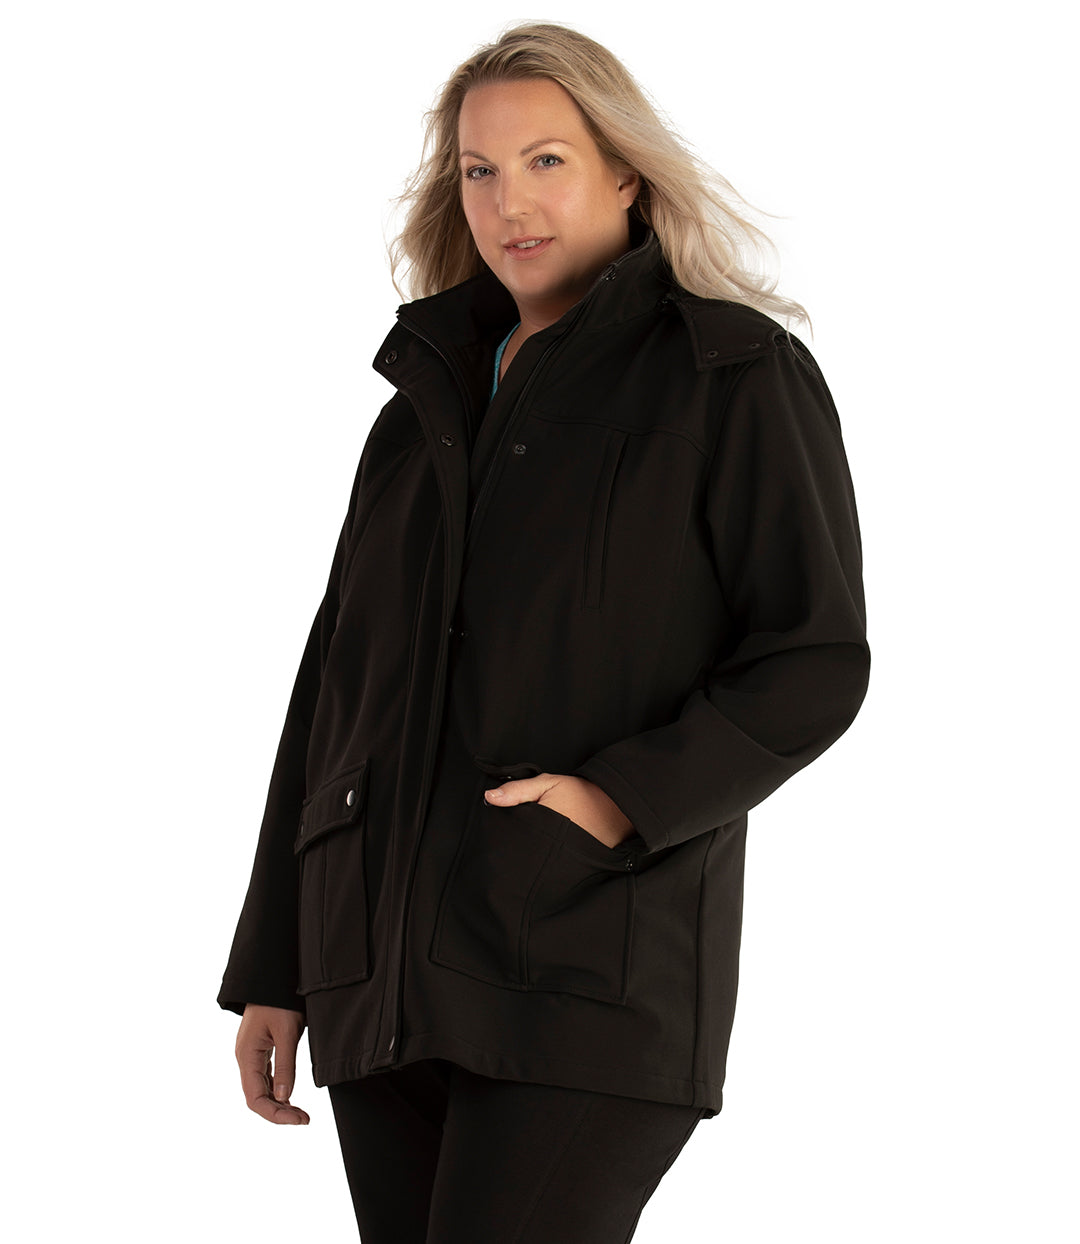 Hooded Softshell Jacket-Outerwear Jacket-Hangzhou Yelta Import and Export Co.,Ltd-XL-Black-JunoActive